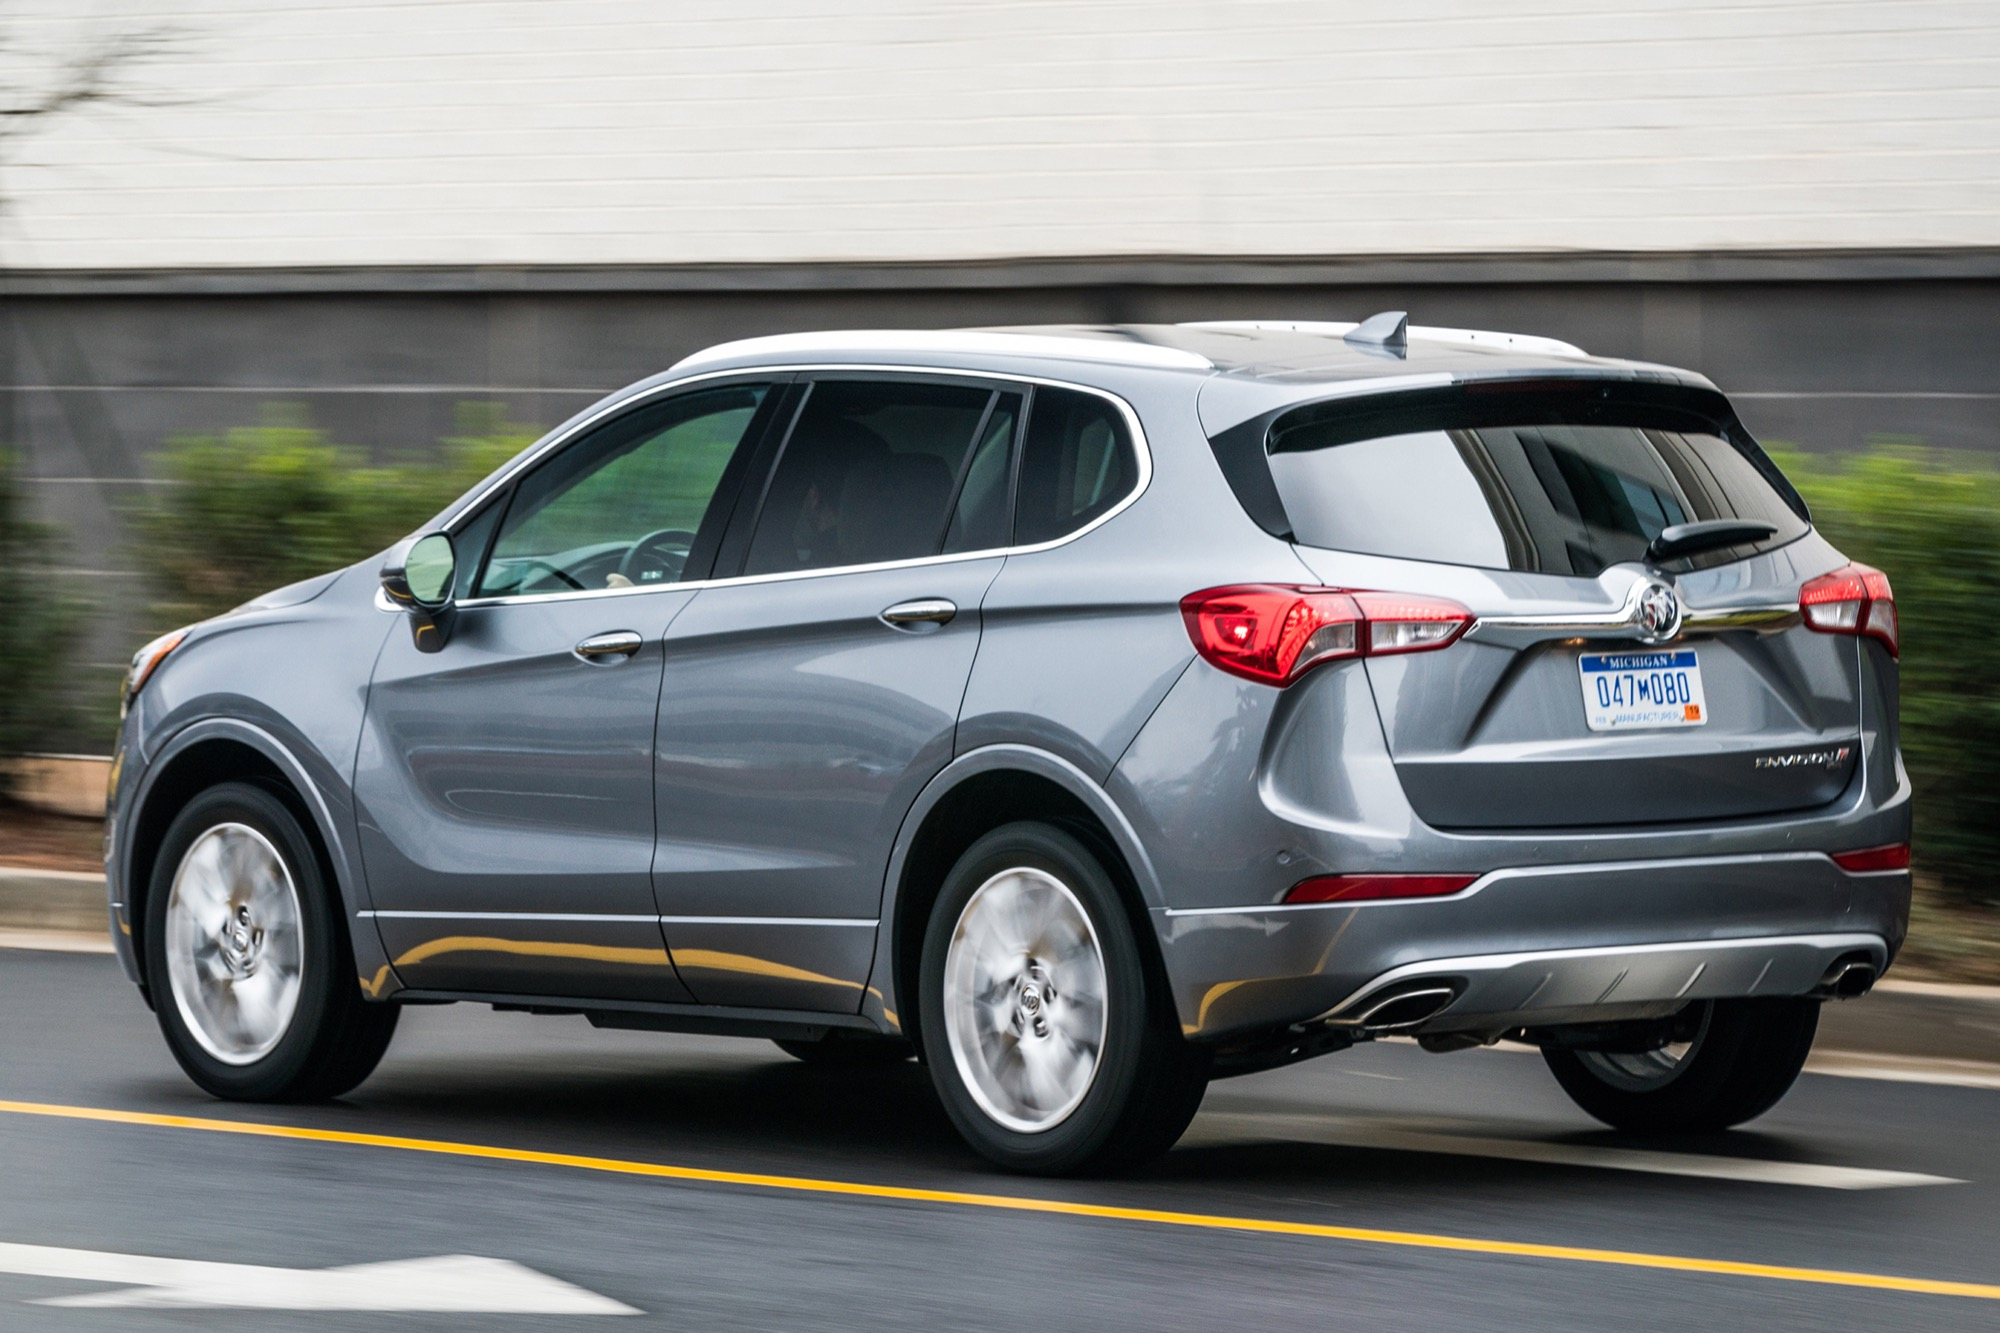 2019 Buick Envision Exterior Colors | Gm Authority New 2022 Buick Envision Release Date, Preferred, Exterior Colors